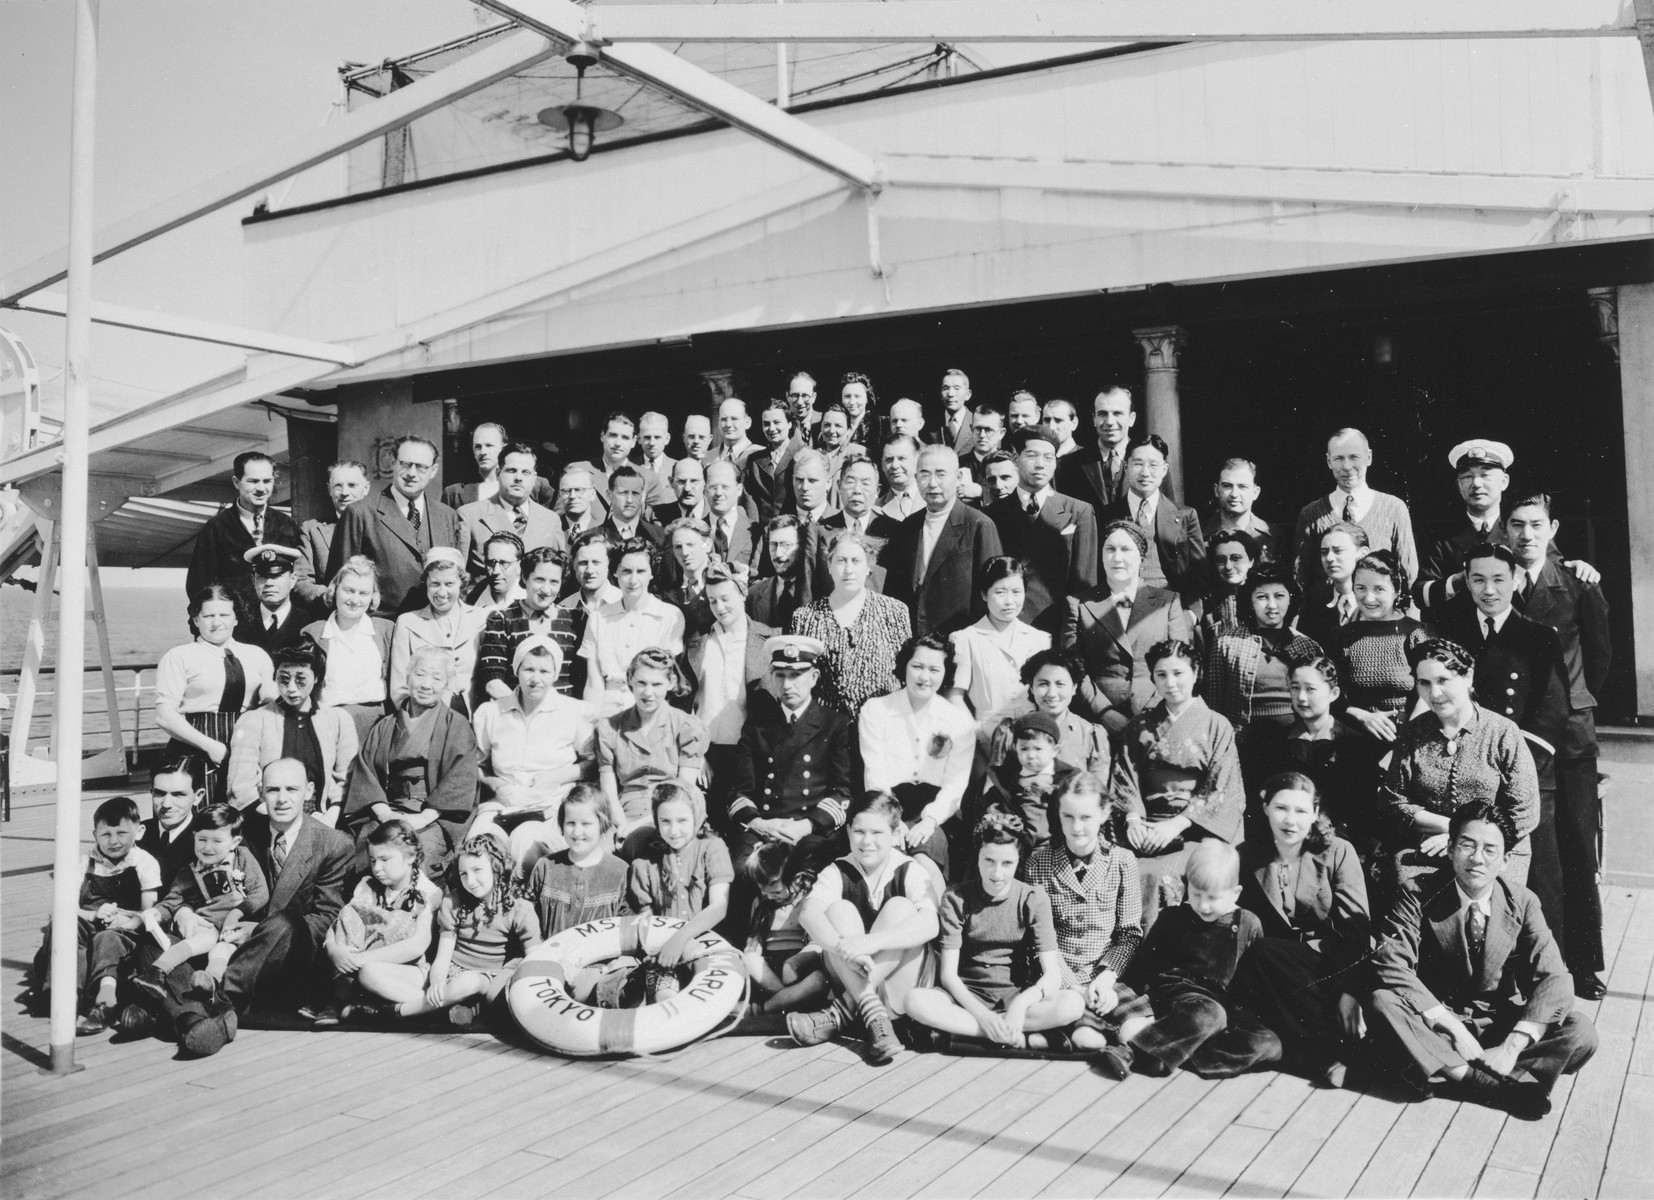 Group portrait of passengers on board the Asama Maru en route from Yokohama via Oahu to San Francisco.  Among those pictured are the ships' crew, Irena Malowist (sitting in the front row, fifth from the right); her mother Maria Malowist (standing in the third row, sixth from the left) and her father Szymon Malowist (standing at the back).